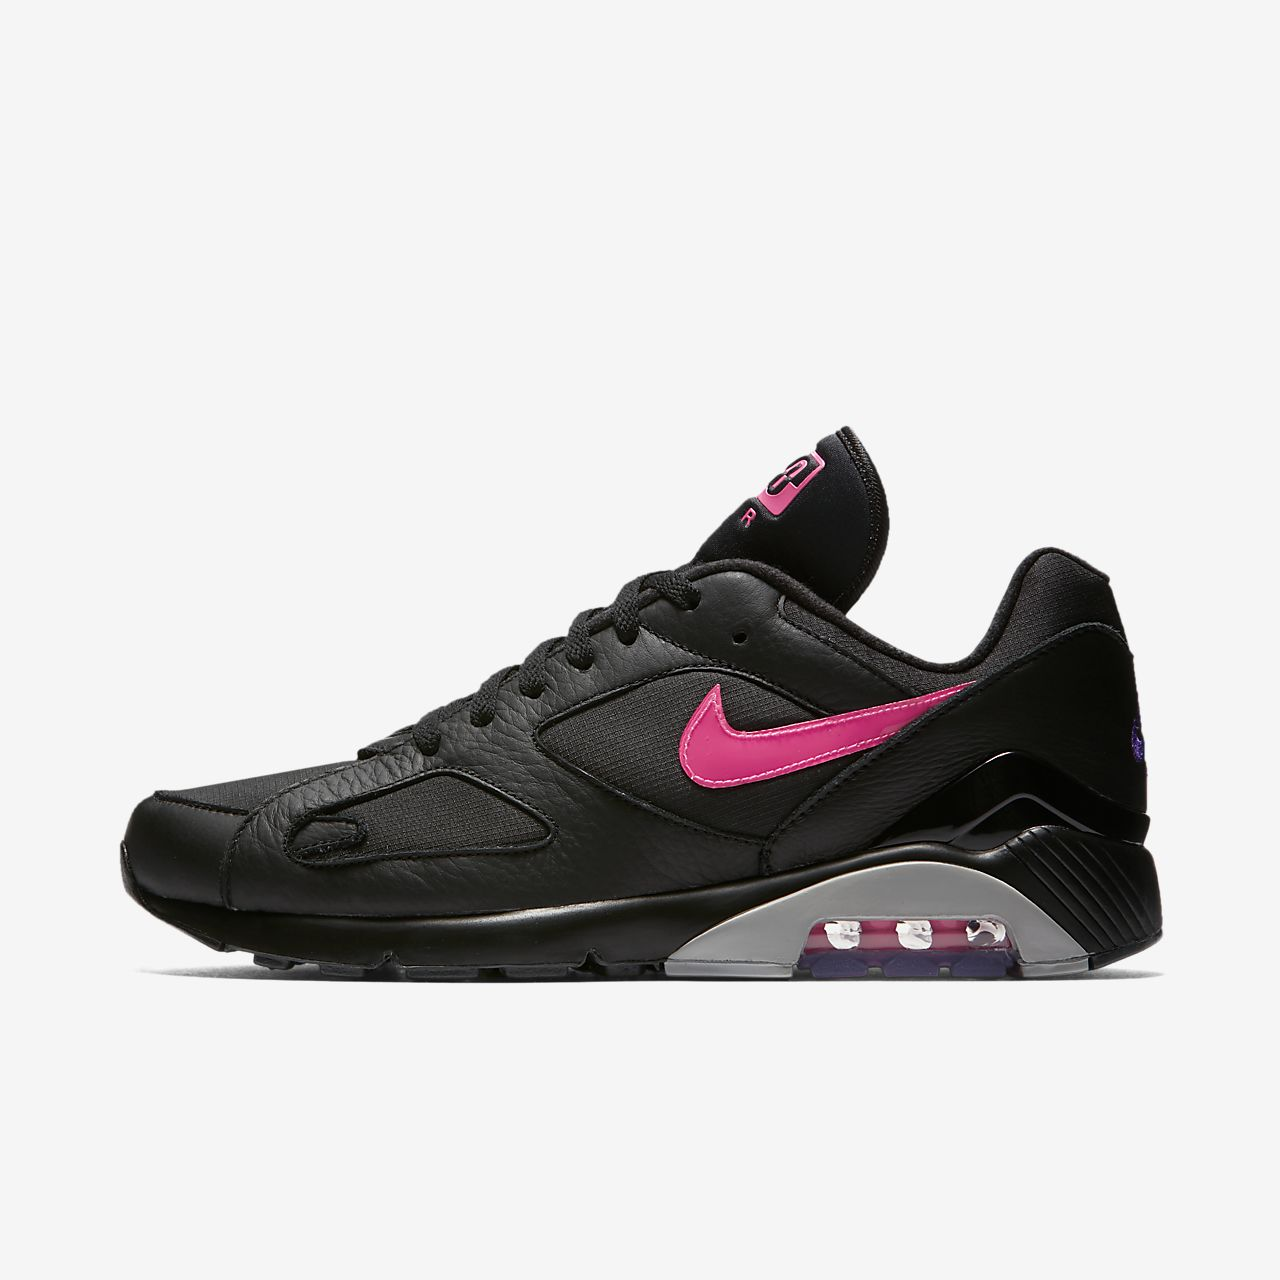 best sneakers 3b194 c2134 ... Nike Air Max 180 Men s Shoe